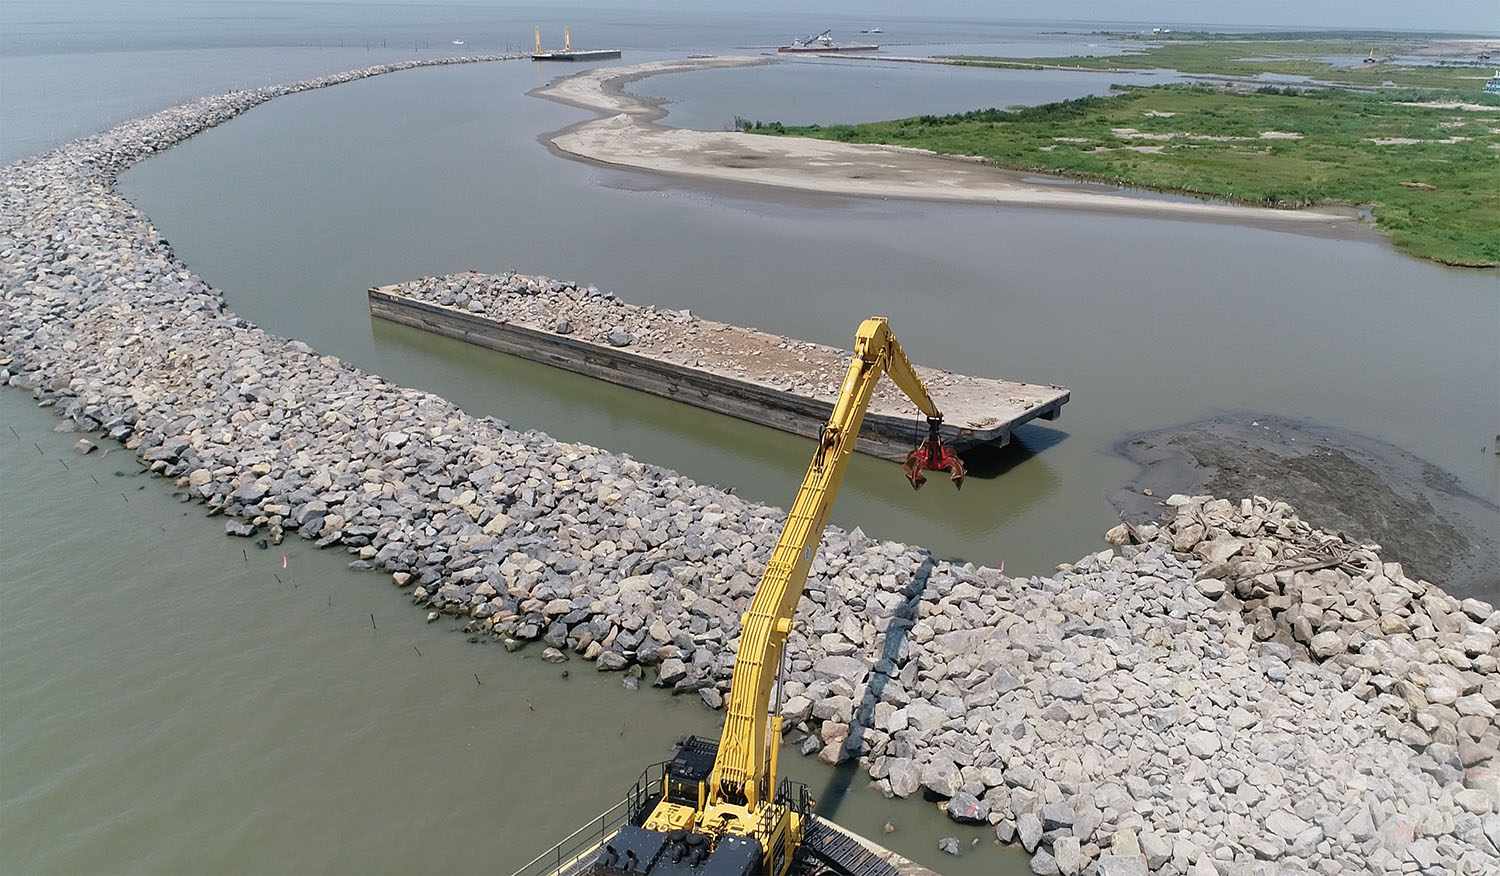 The West Grand Terre Beach Nourishment and Stabilization Project is using nearly 2.5 million cubic yards of dredged sand and close to 50,000 tons of armor stone to restore the shoreline of West Grand Terre Island. The beaches, dunes and marshes protect communities between New Orleans' west bank and Bayou Lafourche. (Photo courtesy of Daulton Barge Leasing, Sales & Management)